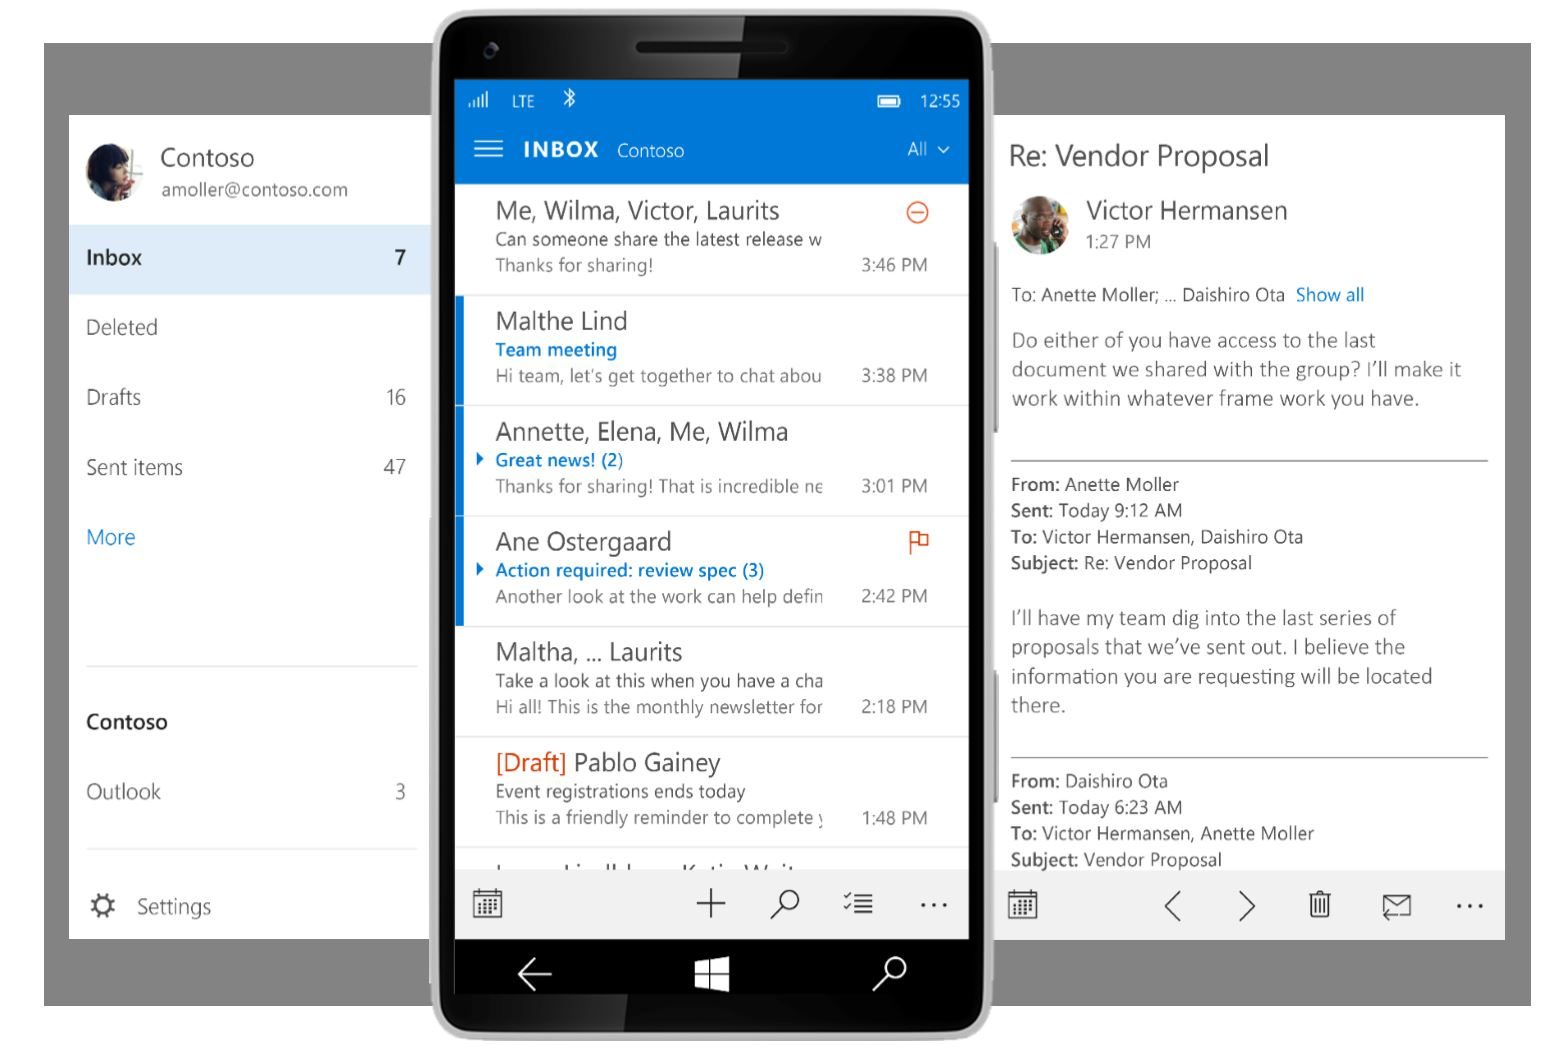 Windows 10 Outlook Mobile